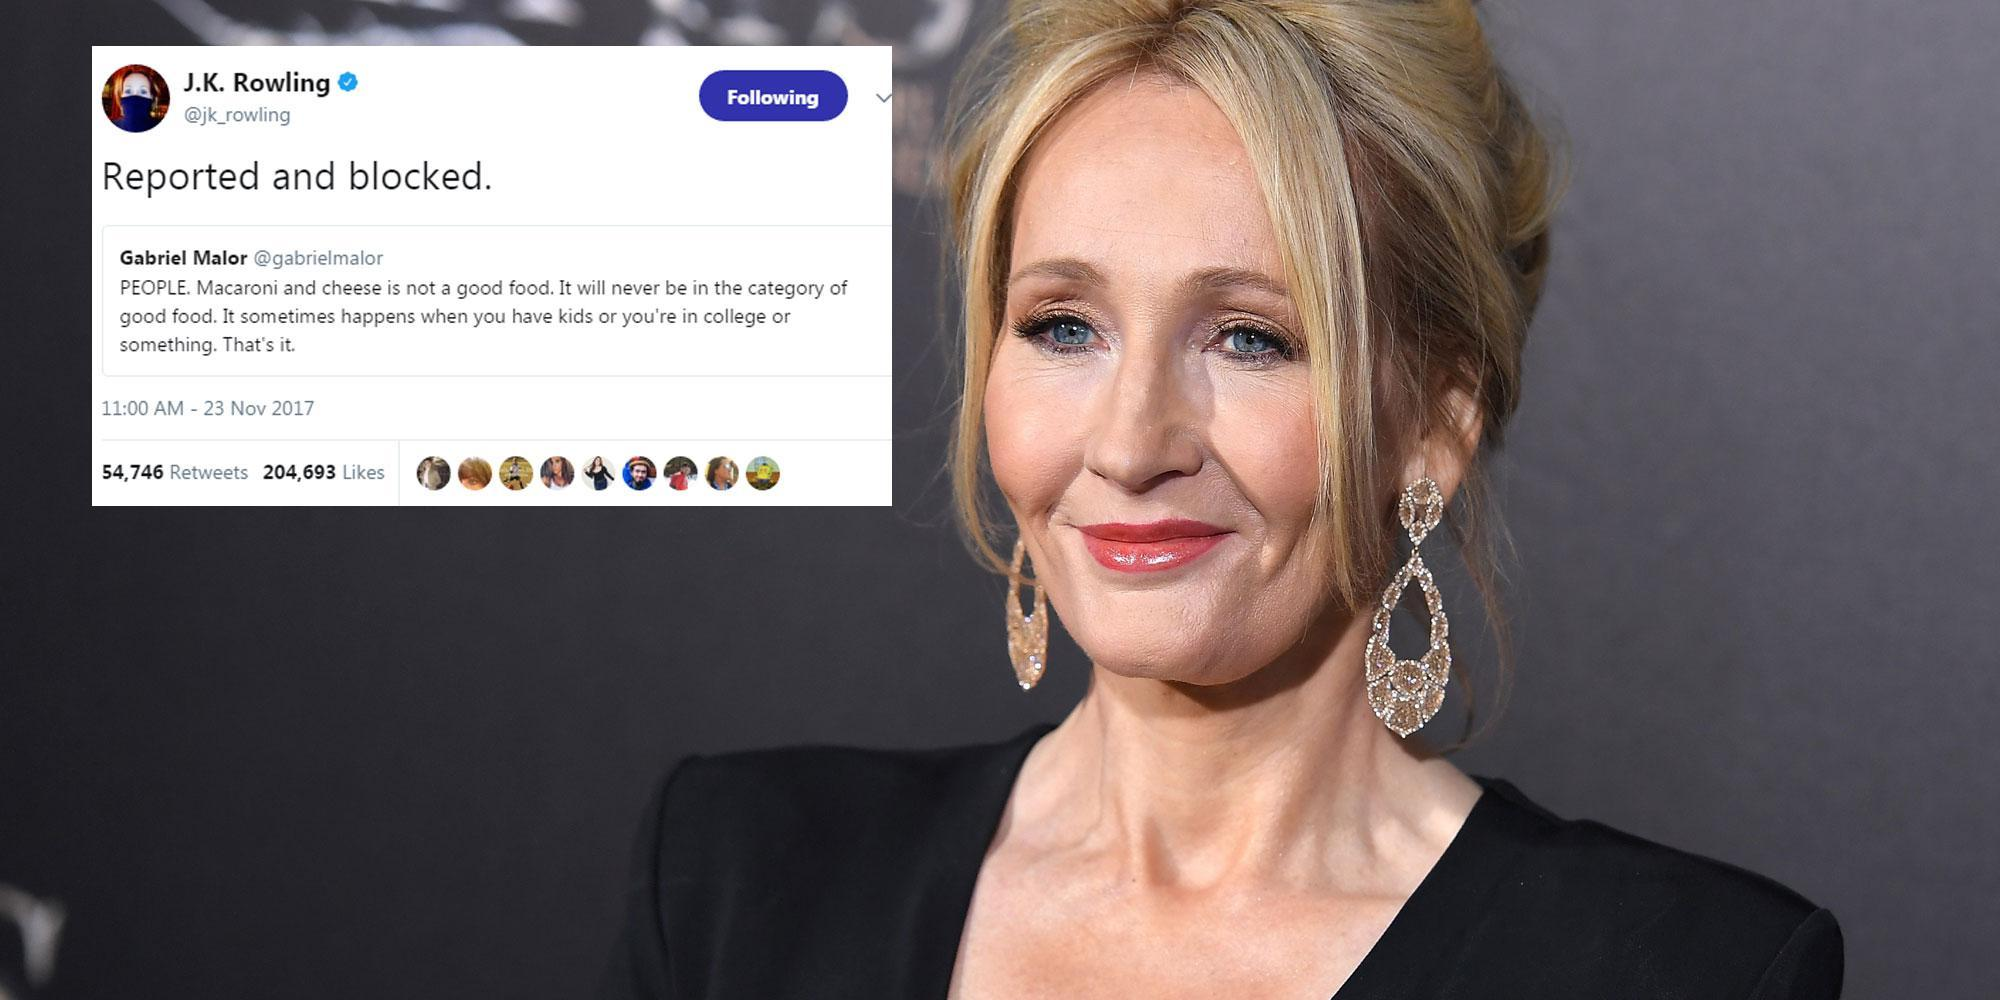 Jk Rowling Had The Best Response To This Food Monster